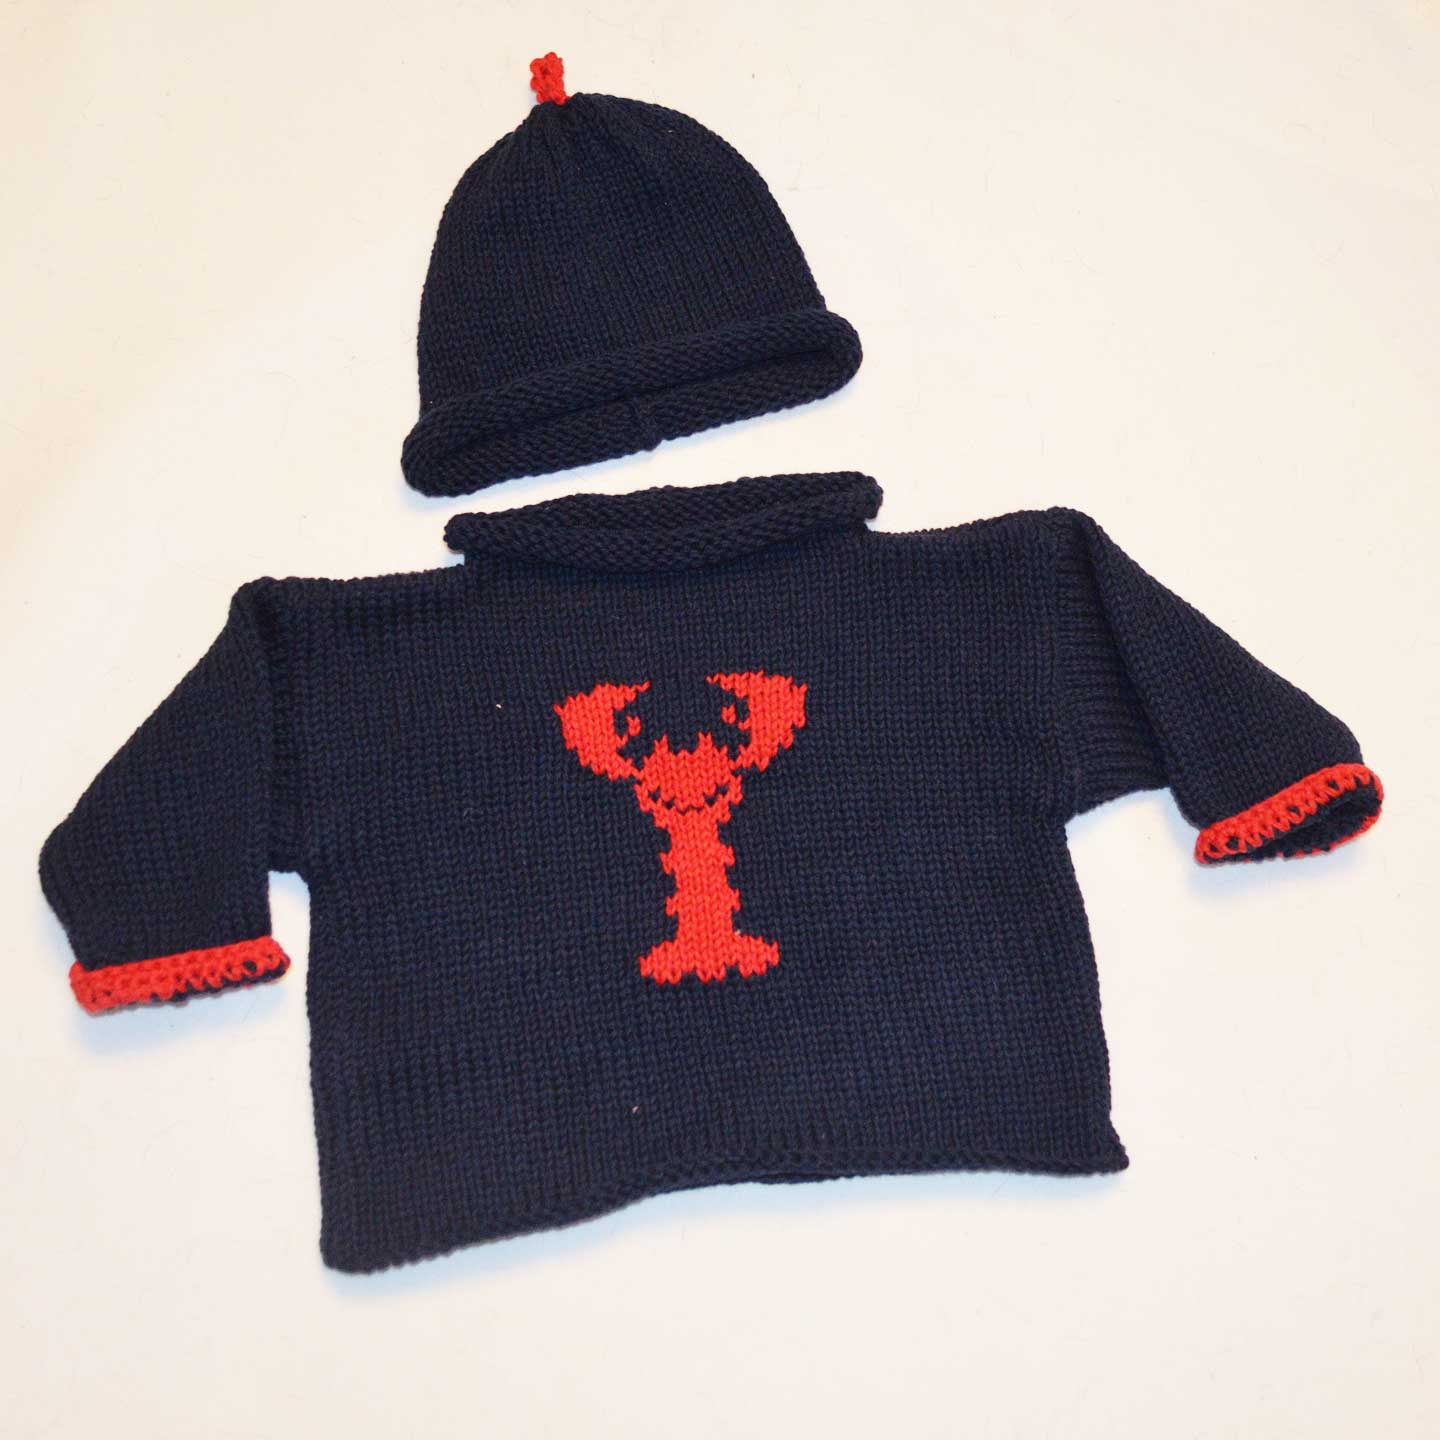 Handknit Lobster Sweater and Hat